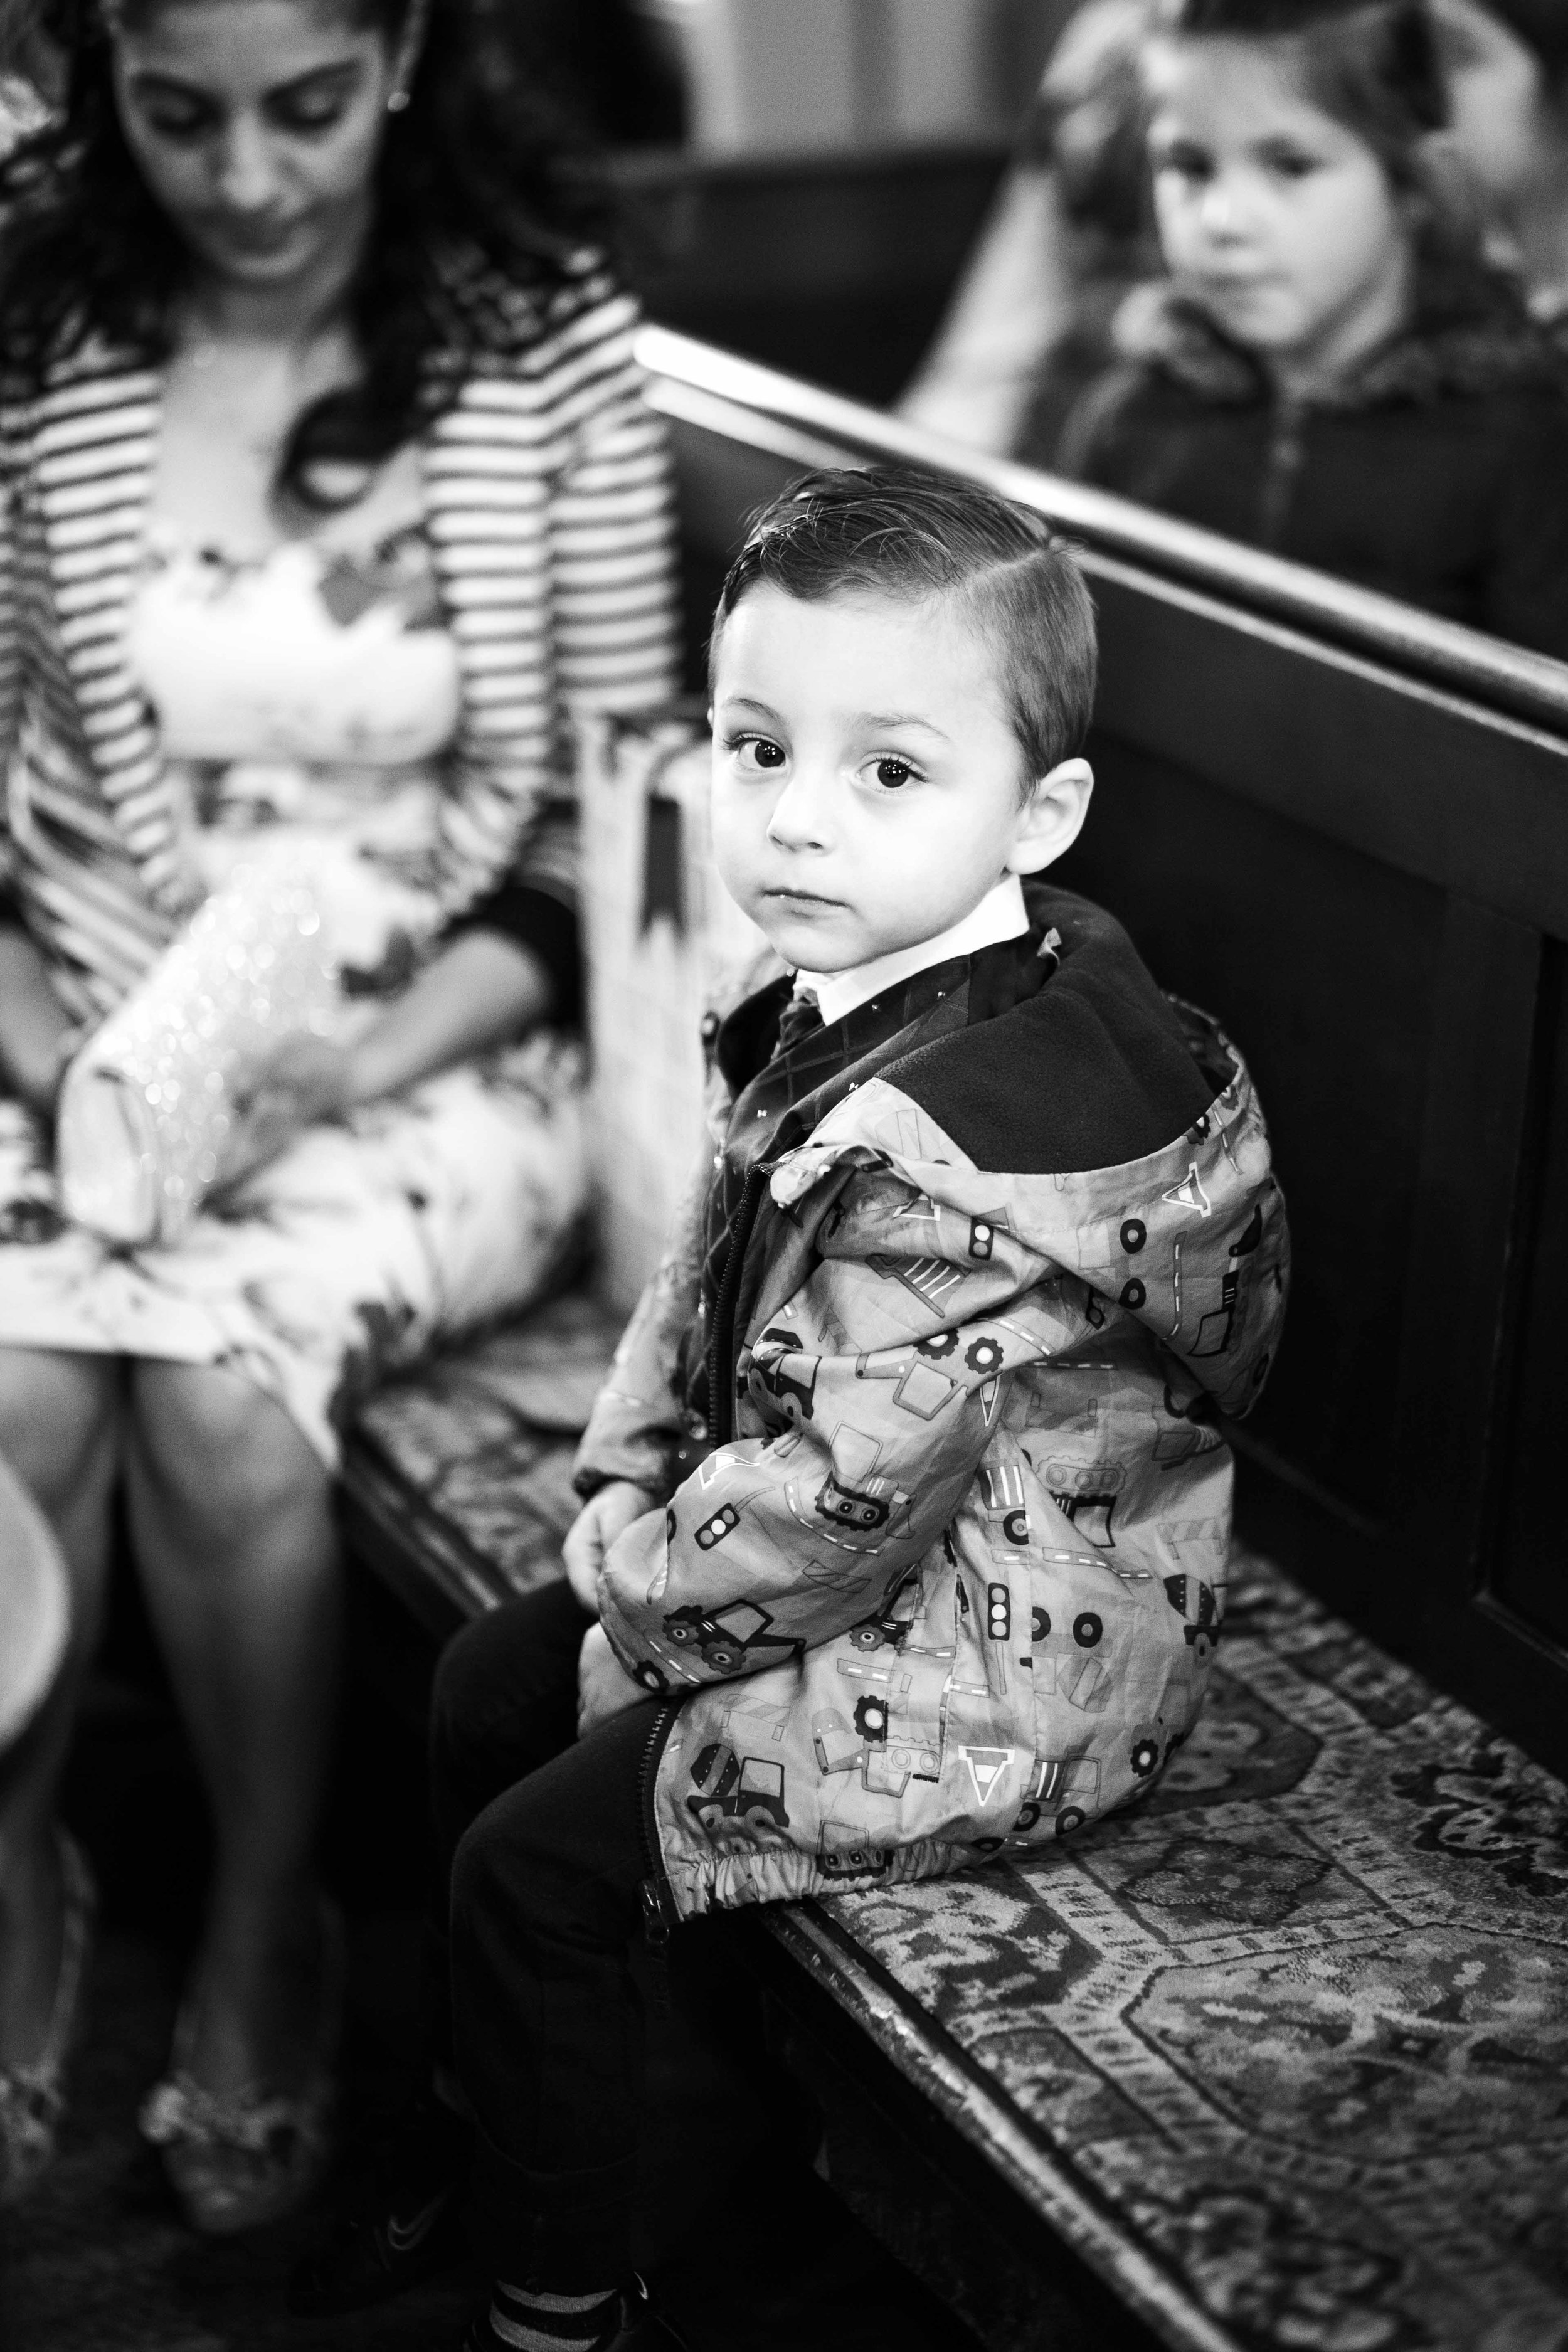 Lea-cooper-photography-christening-photographer-baptism-wolverhampton-wednesbury-walsall-willenhall-dudley-church-chapel-event-photography-4.jpg